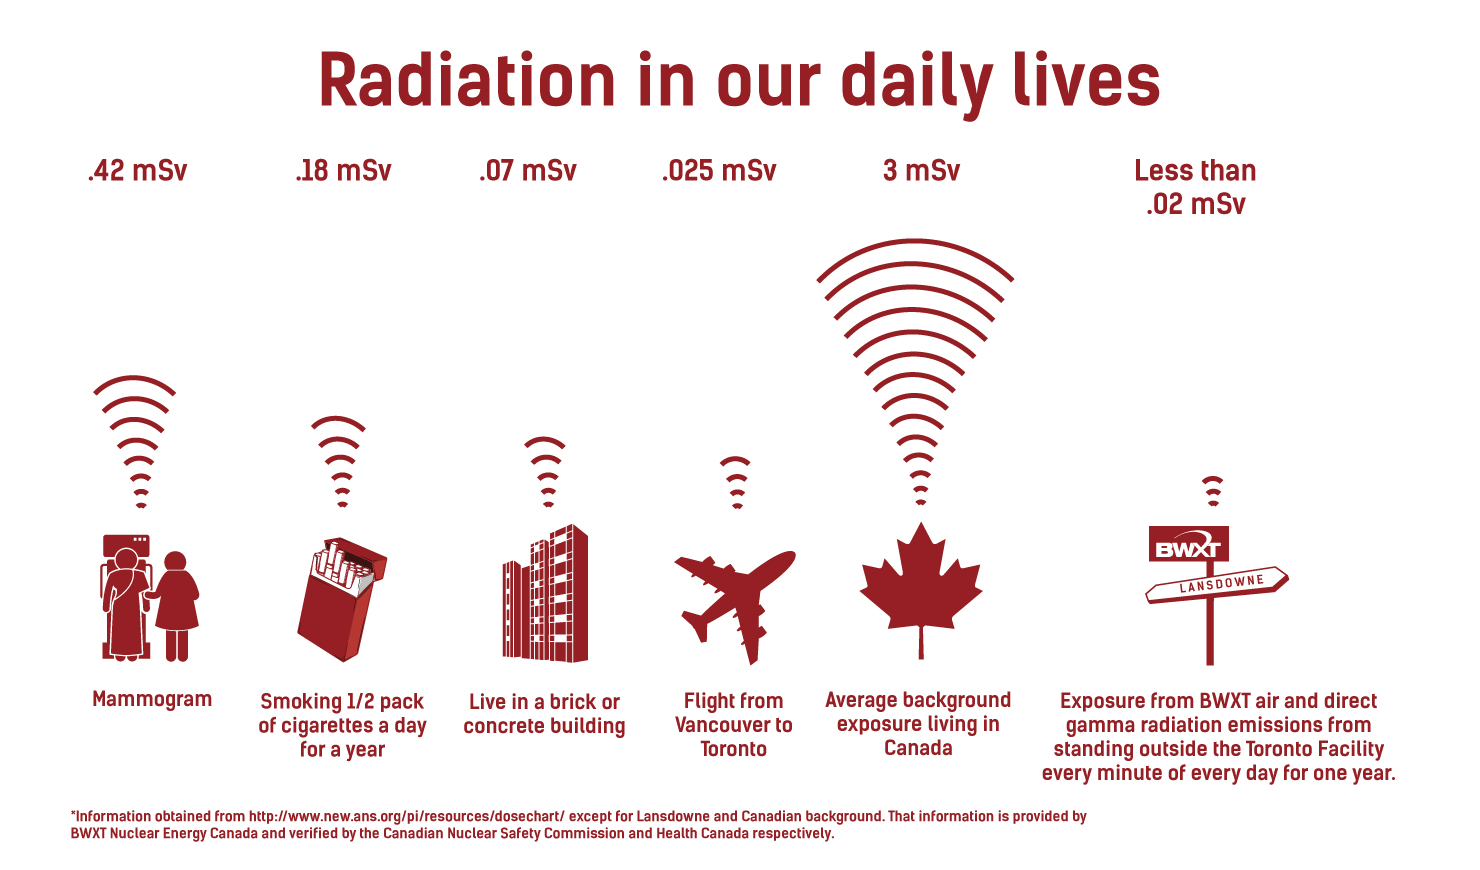 Radiation in our daily lives